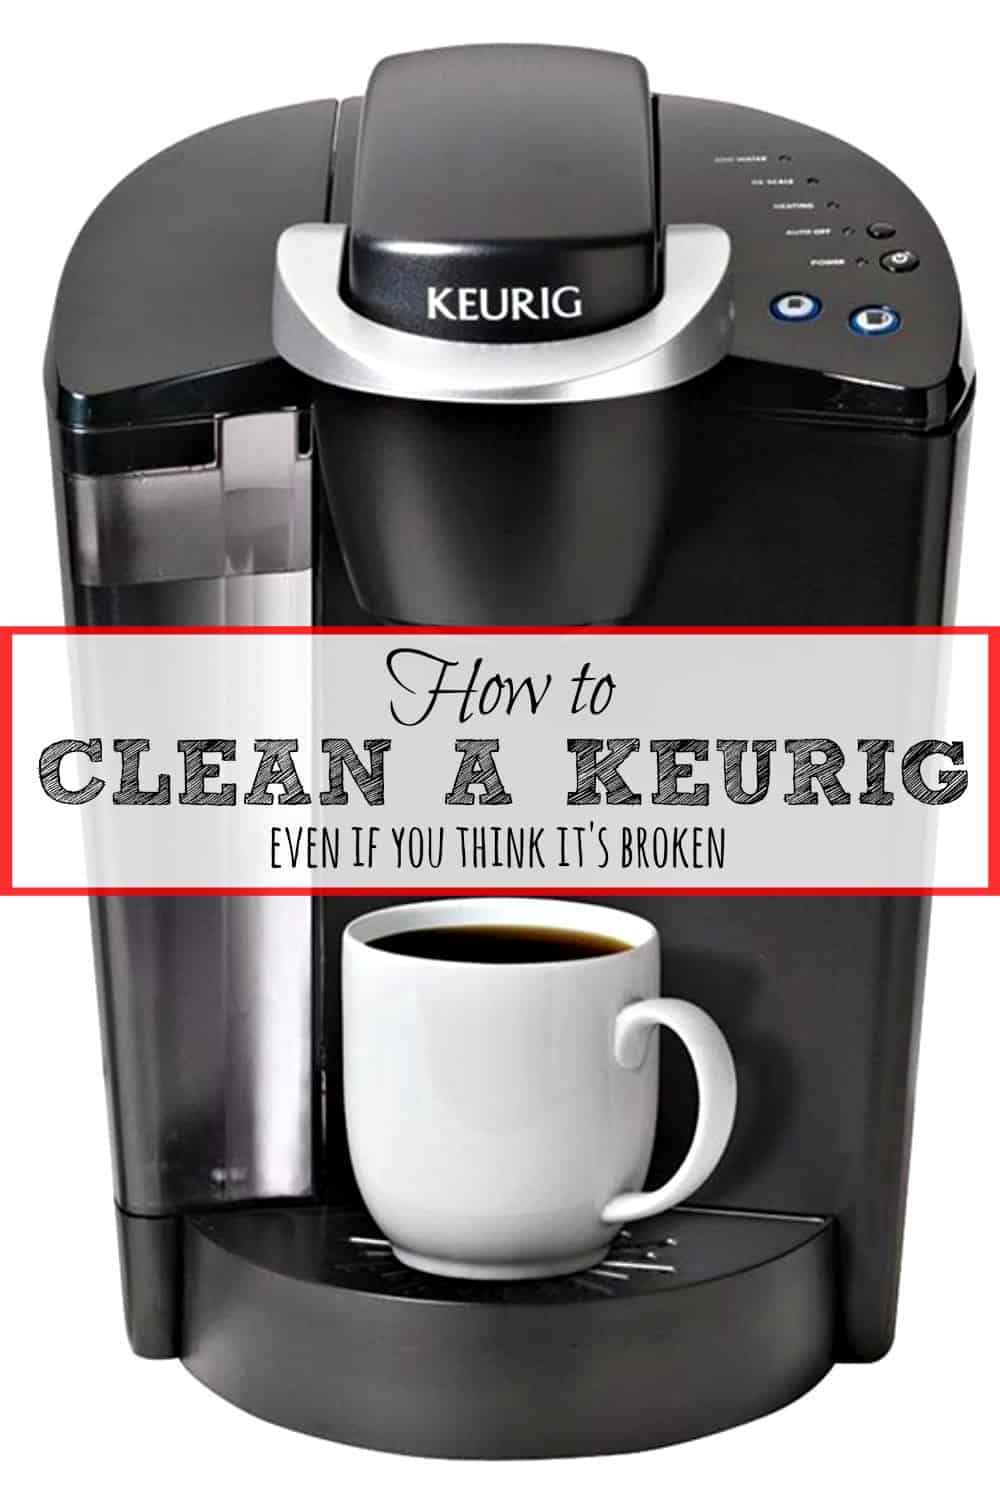 Coffee Maker Clean Button : How To Clean A Keurig (even if you think it s broken) Housewife How-To s